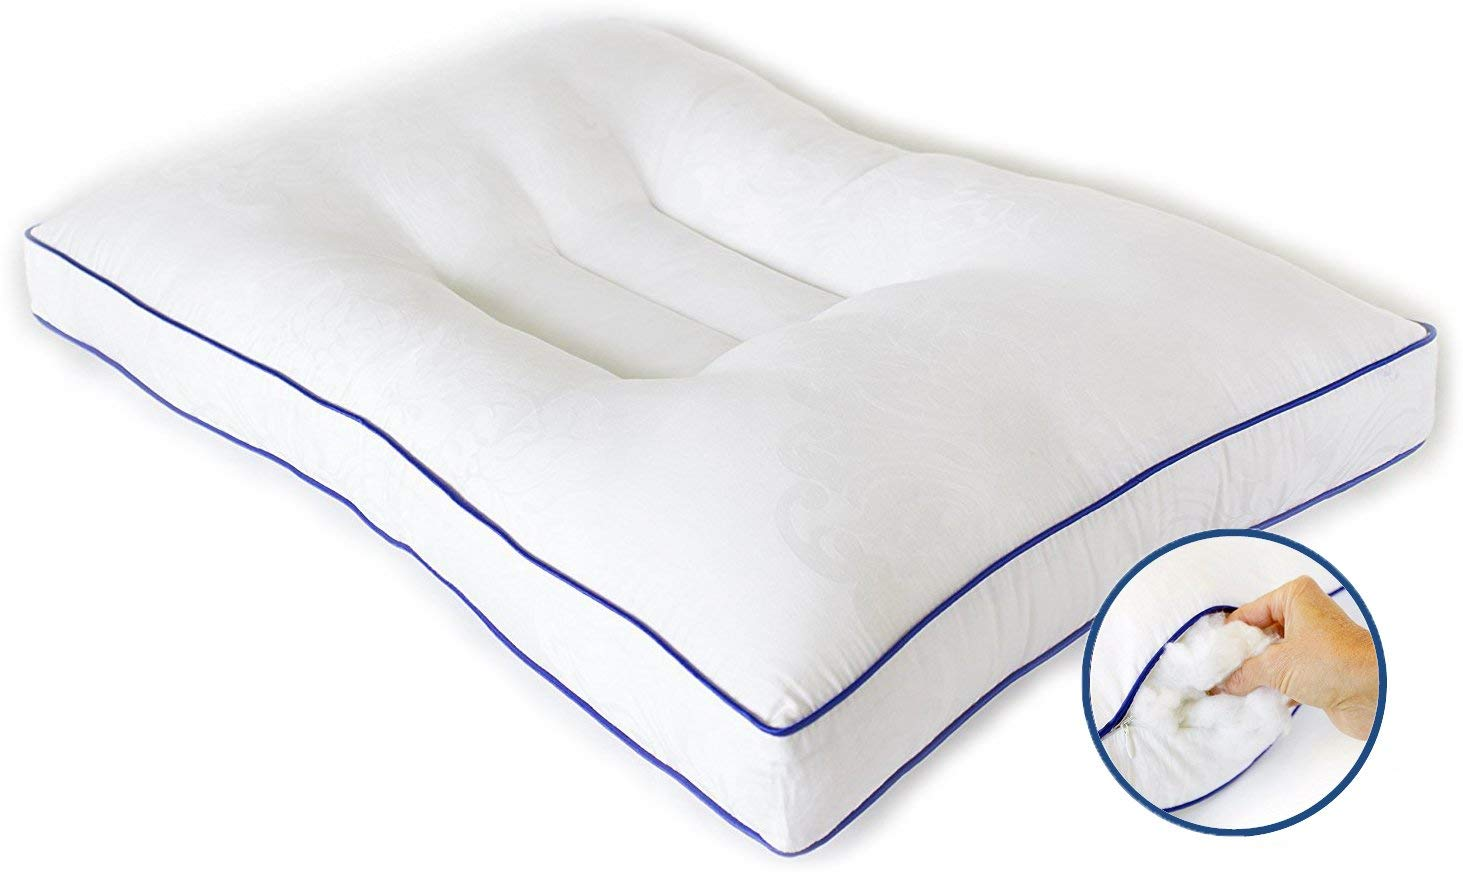 Nature's Guest Pillow for Neck Pain Review by www.snoremagazine.com